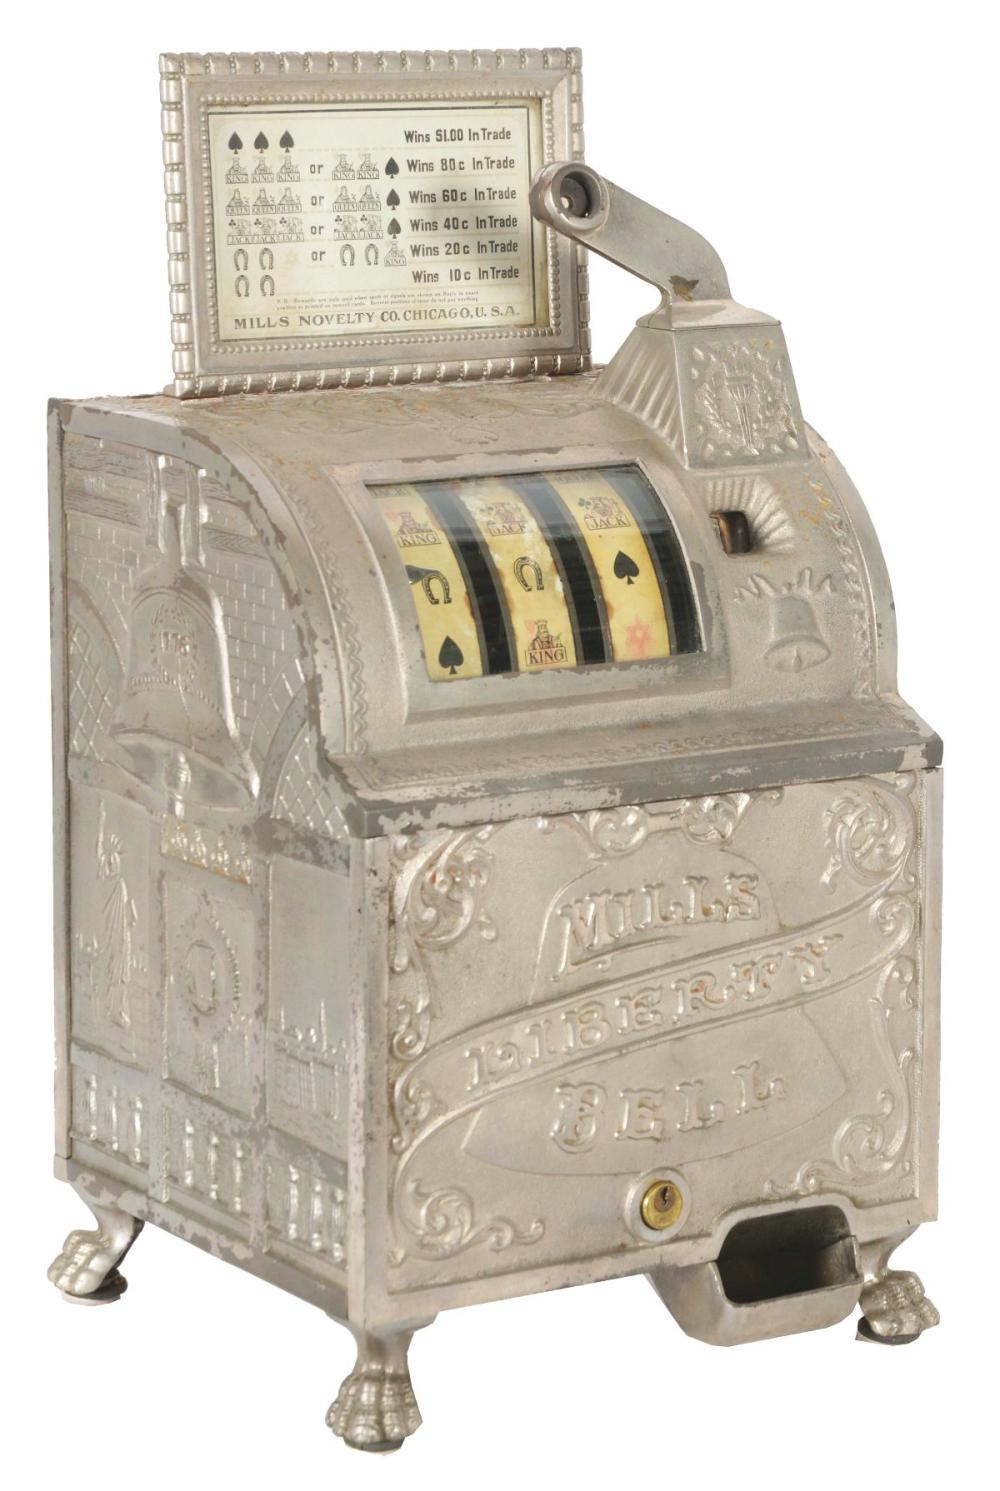 5¢ MILLS LIBERTY BELL SLOT MACHINE.